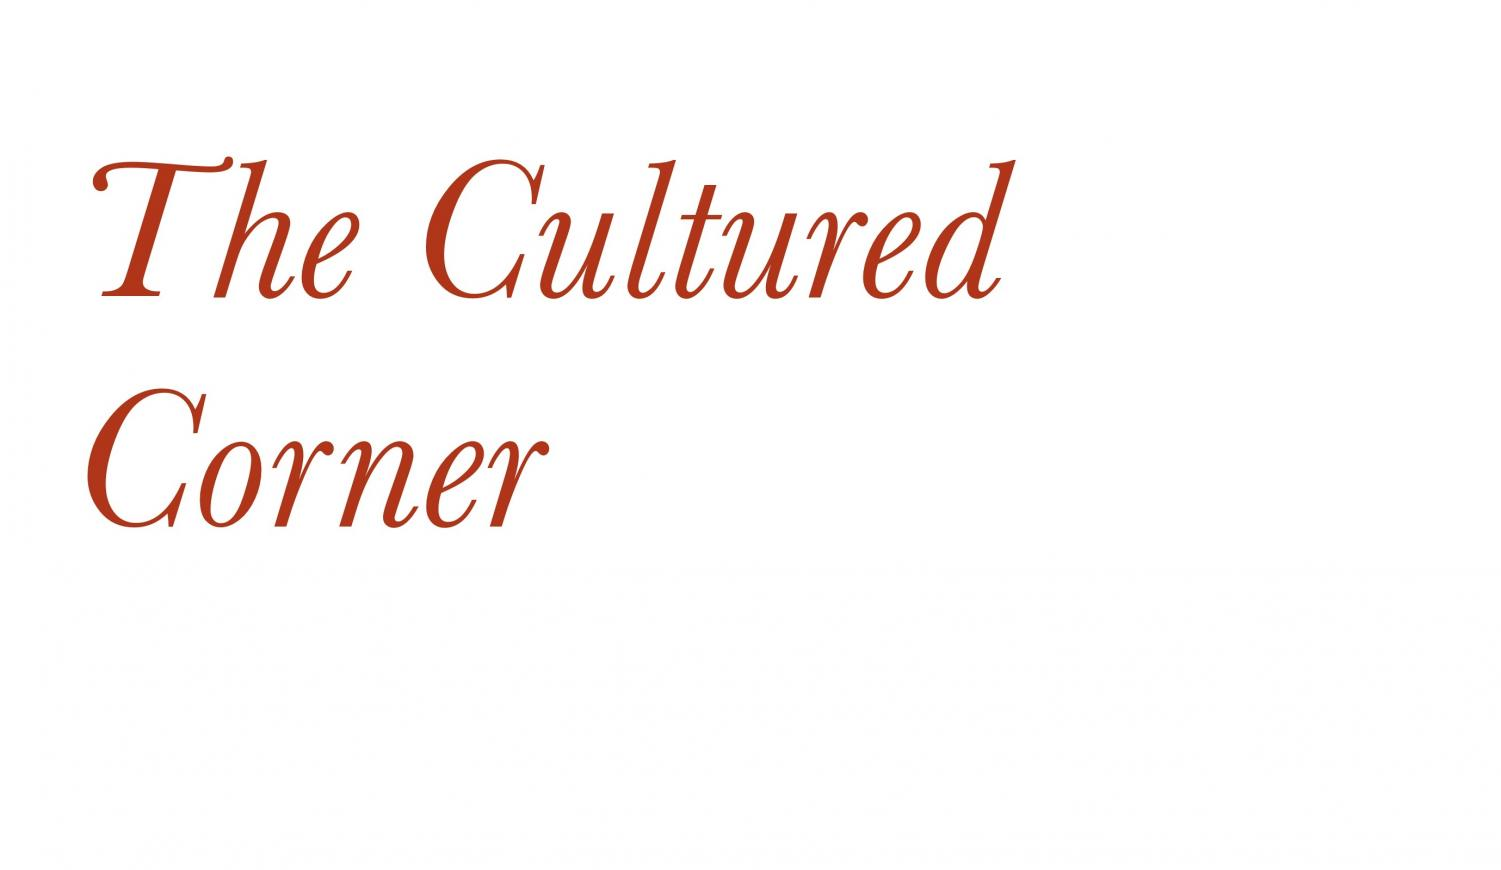 The Cultured Corner is a column on pop culture where we bring you the news that students are talking about, from the students themselves, in their own words.